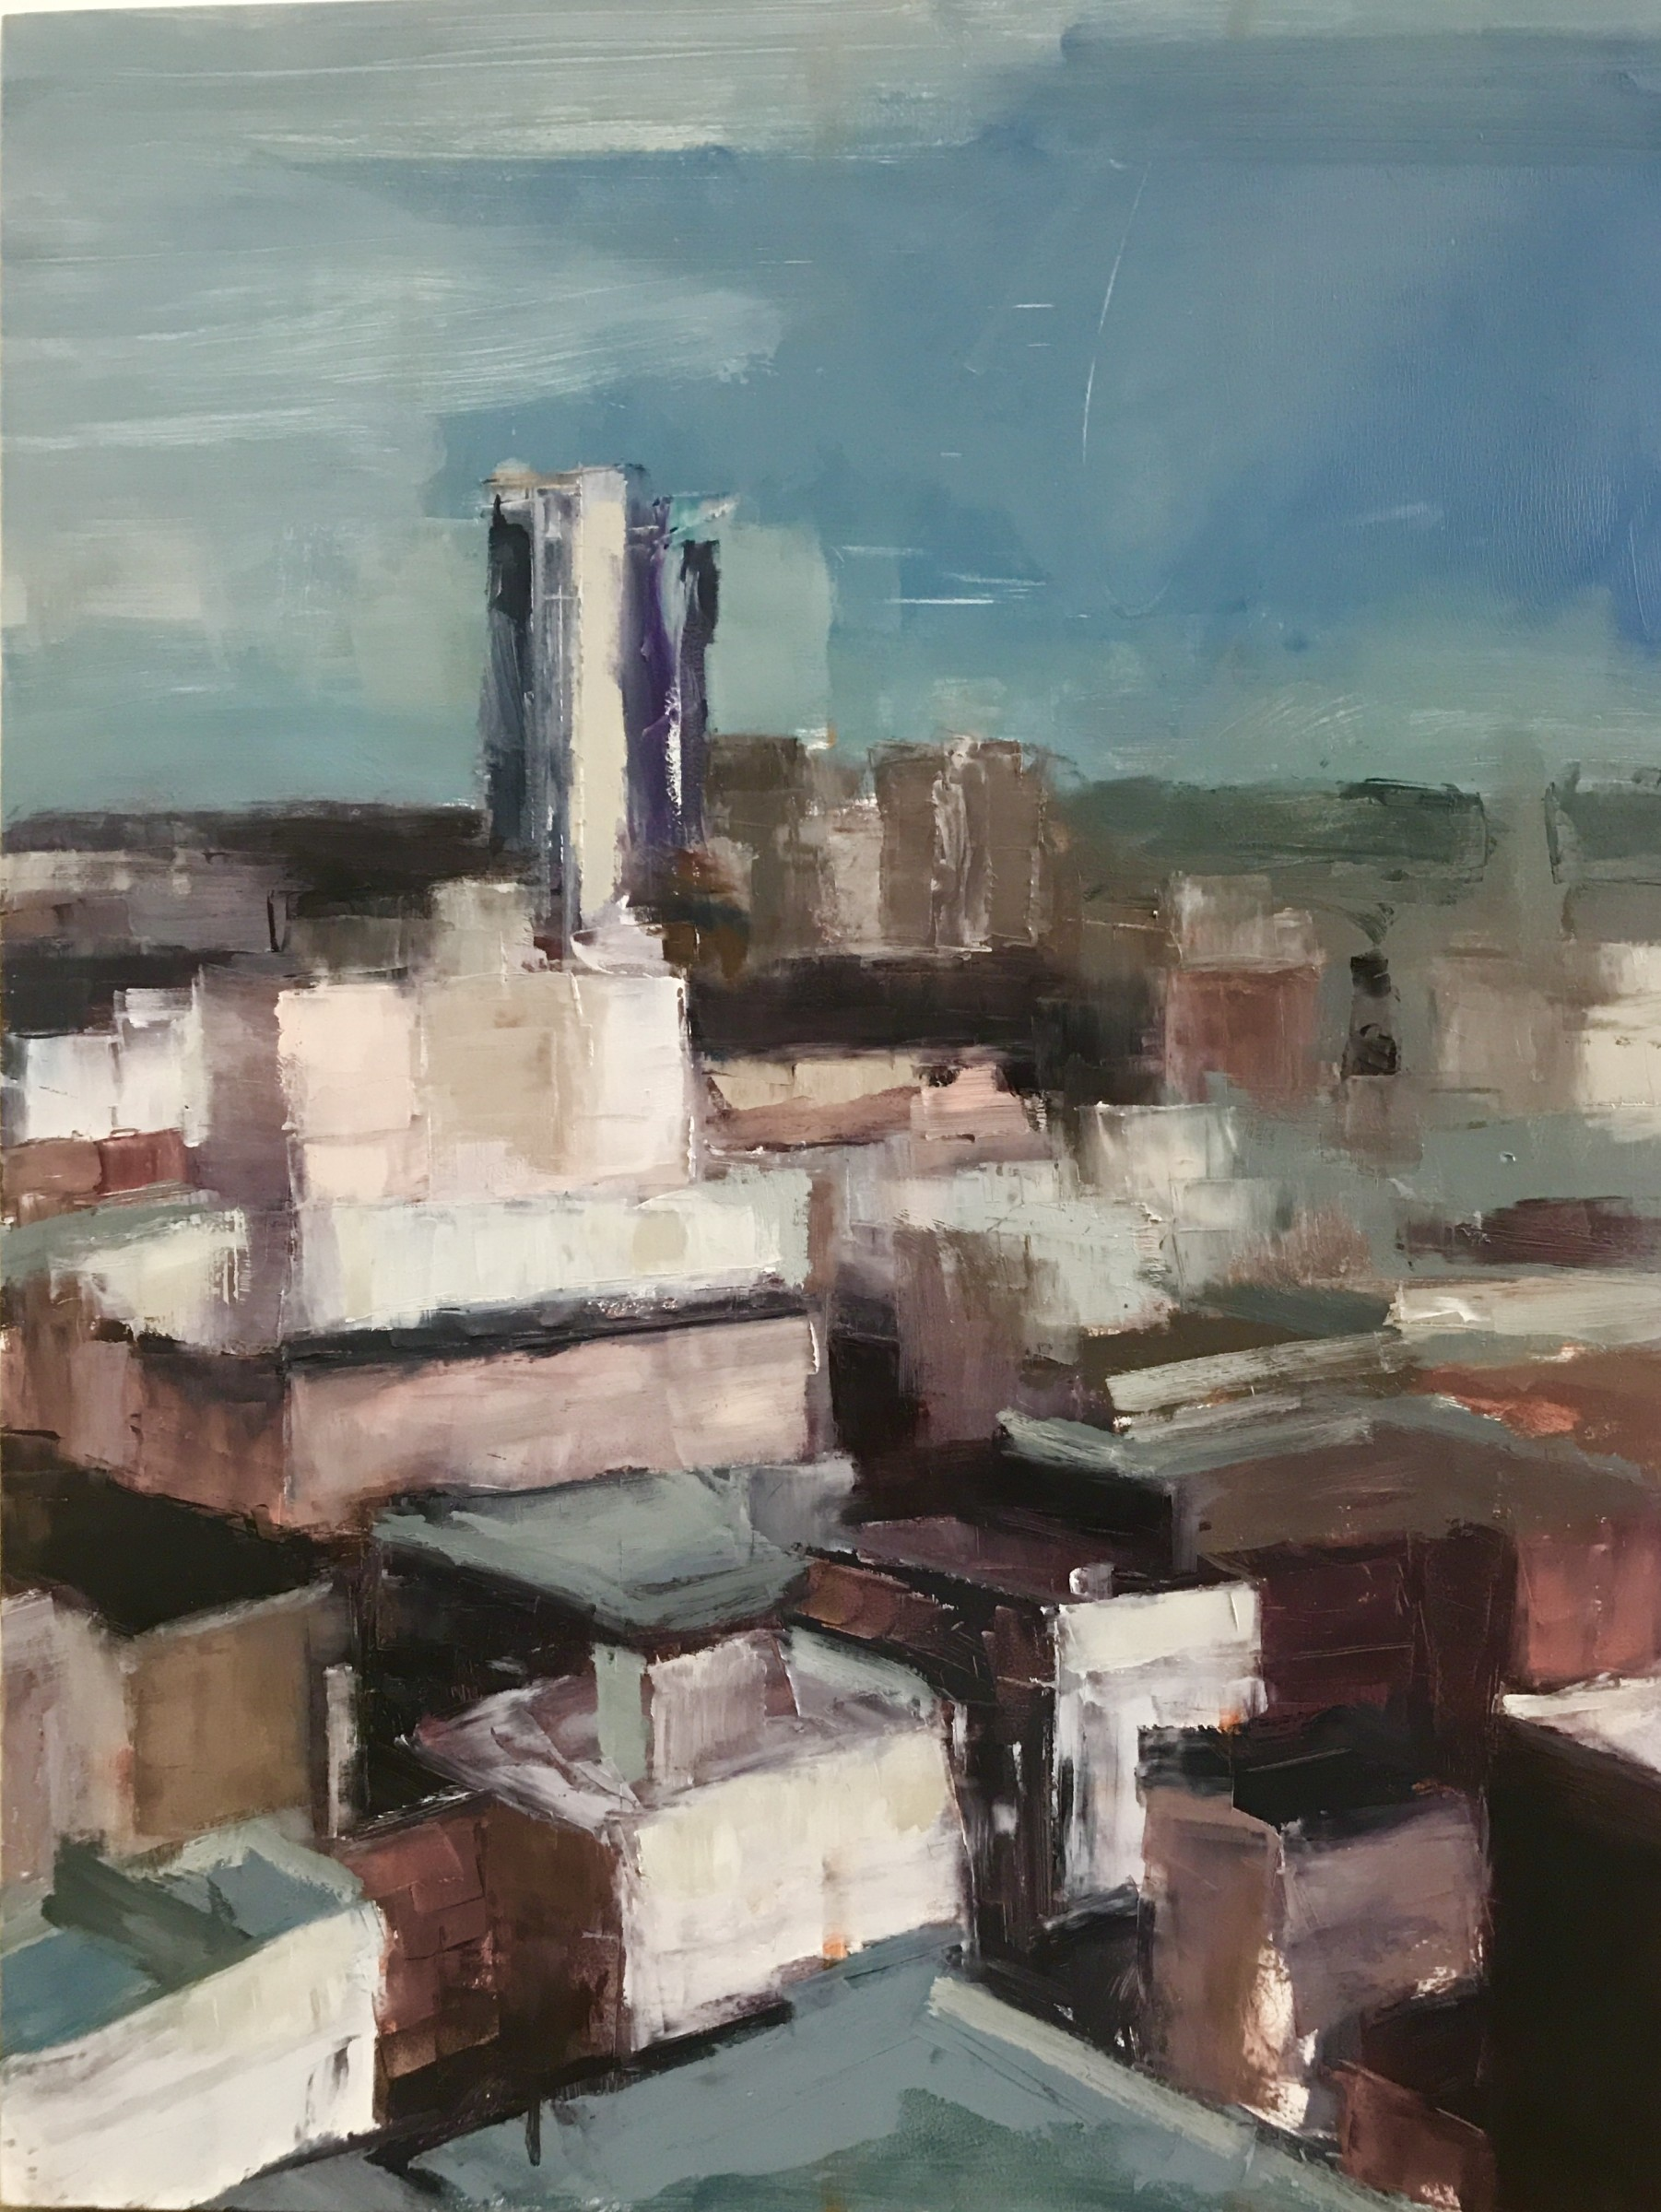 "<span class=""link fancybox-details-link""><a href=""/artists/56-hadas-tal/works/267-hadas-tal-soma-rooftops-2018/"">View Detail Page</a></span><div class=""artist""><strong>Hadas Tal</strong></div> <div class=""title""><em>Soma Rooftops </em>, 2018</div> <div class=""medium"">Oil on Wood Panel</div> <div class=""dimensions"">16 x 12 inches </div>"